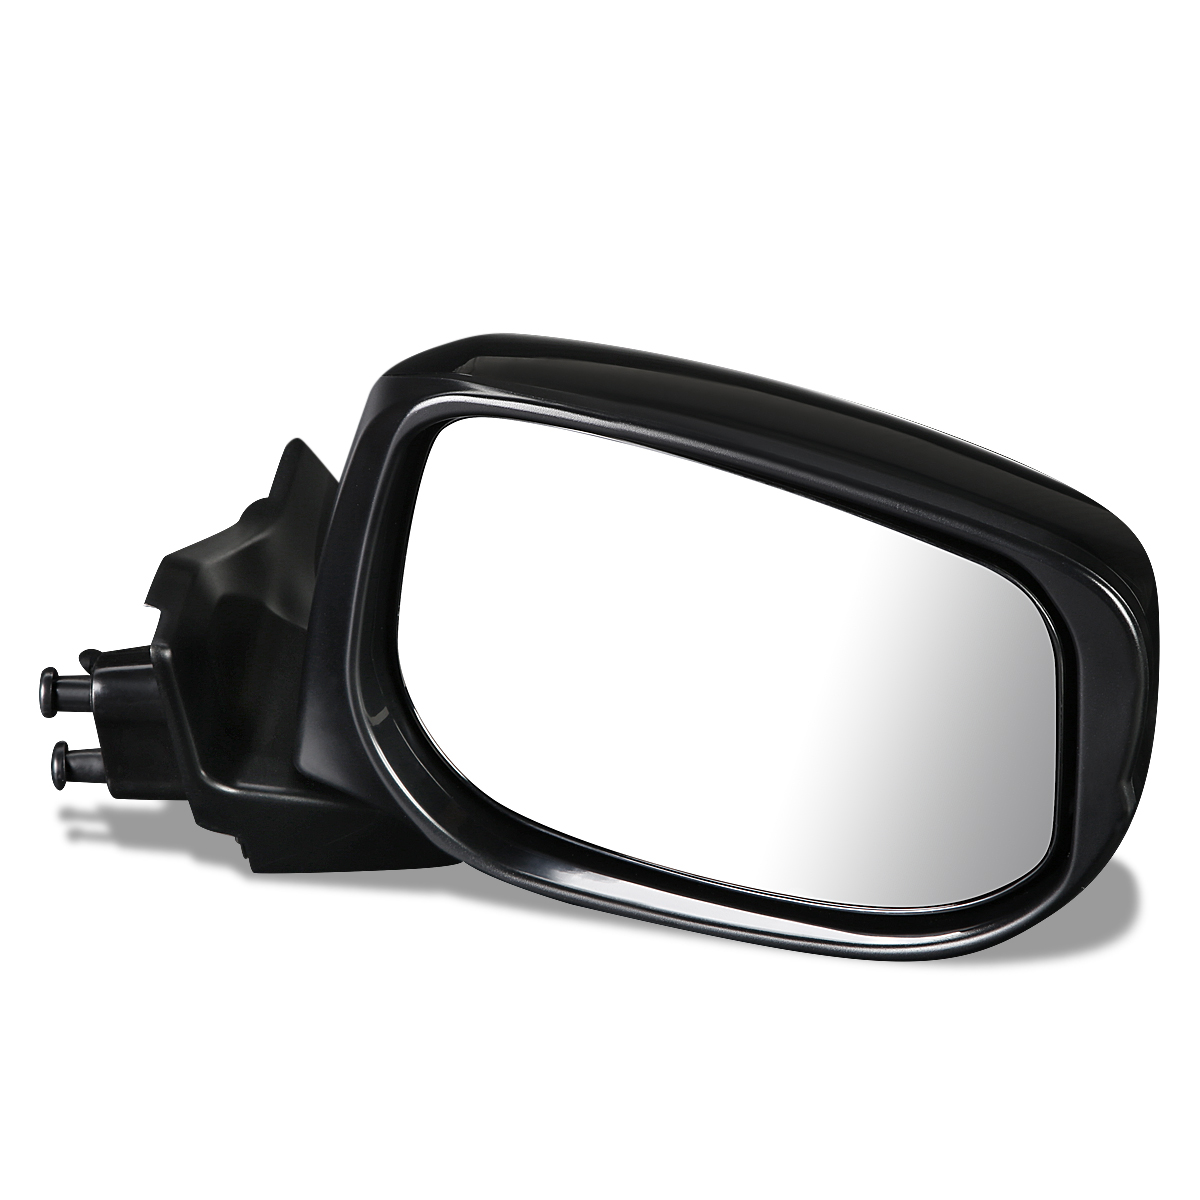 HO1321253 OE Style Powered Passenger//Right Side View Door Mirror for Honda Insight 10-14